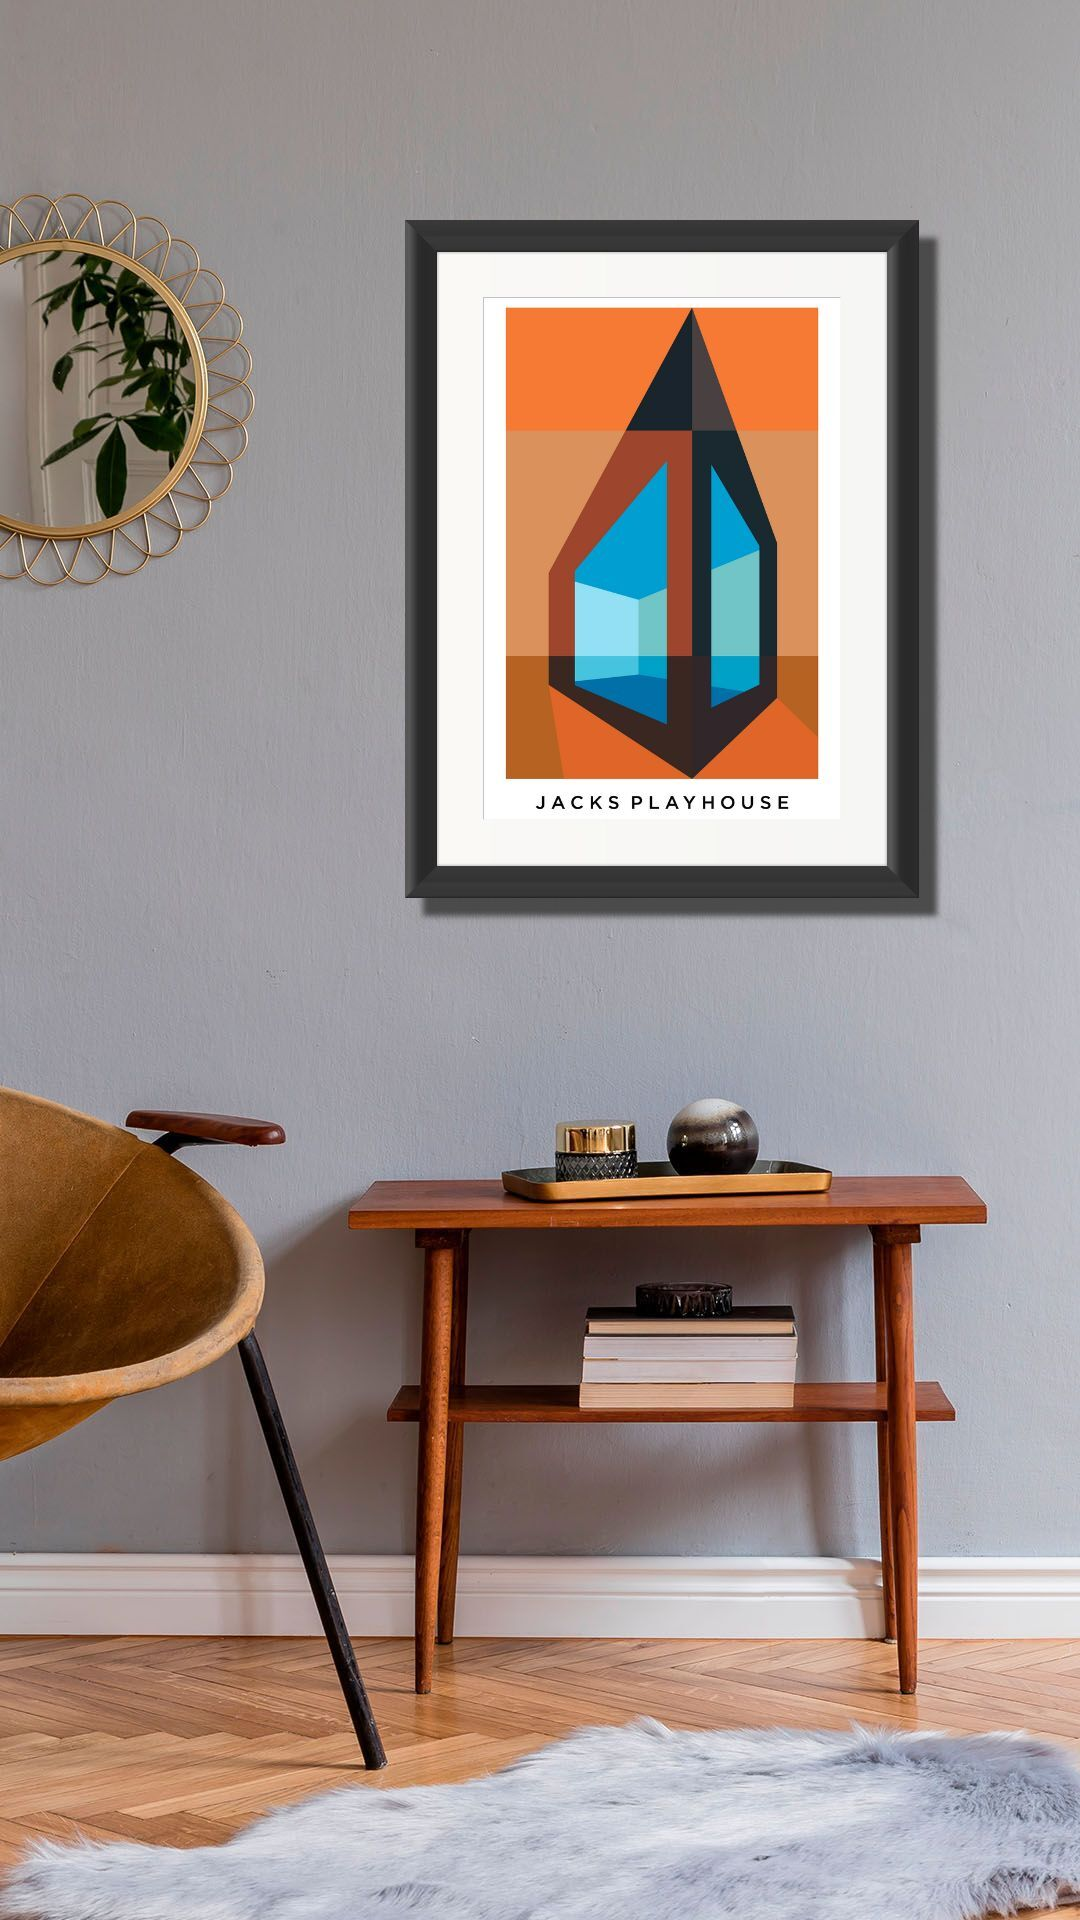 Jacks Playhouse. Limited Edition Giclee Print